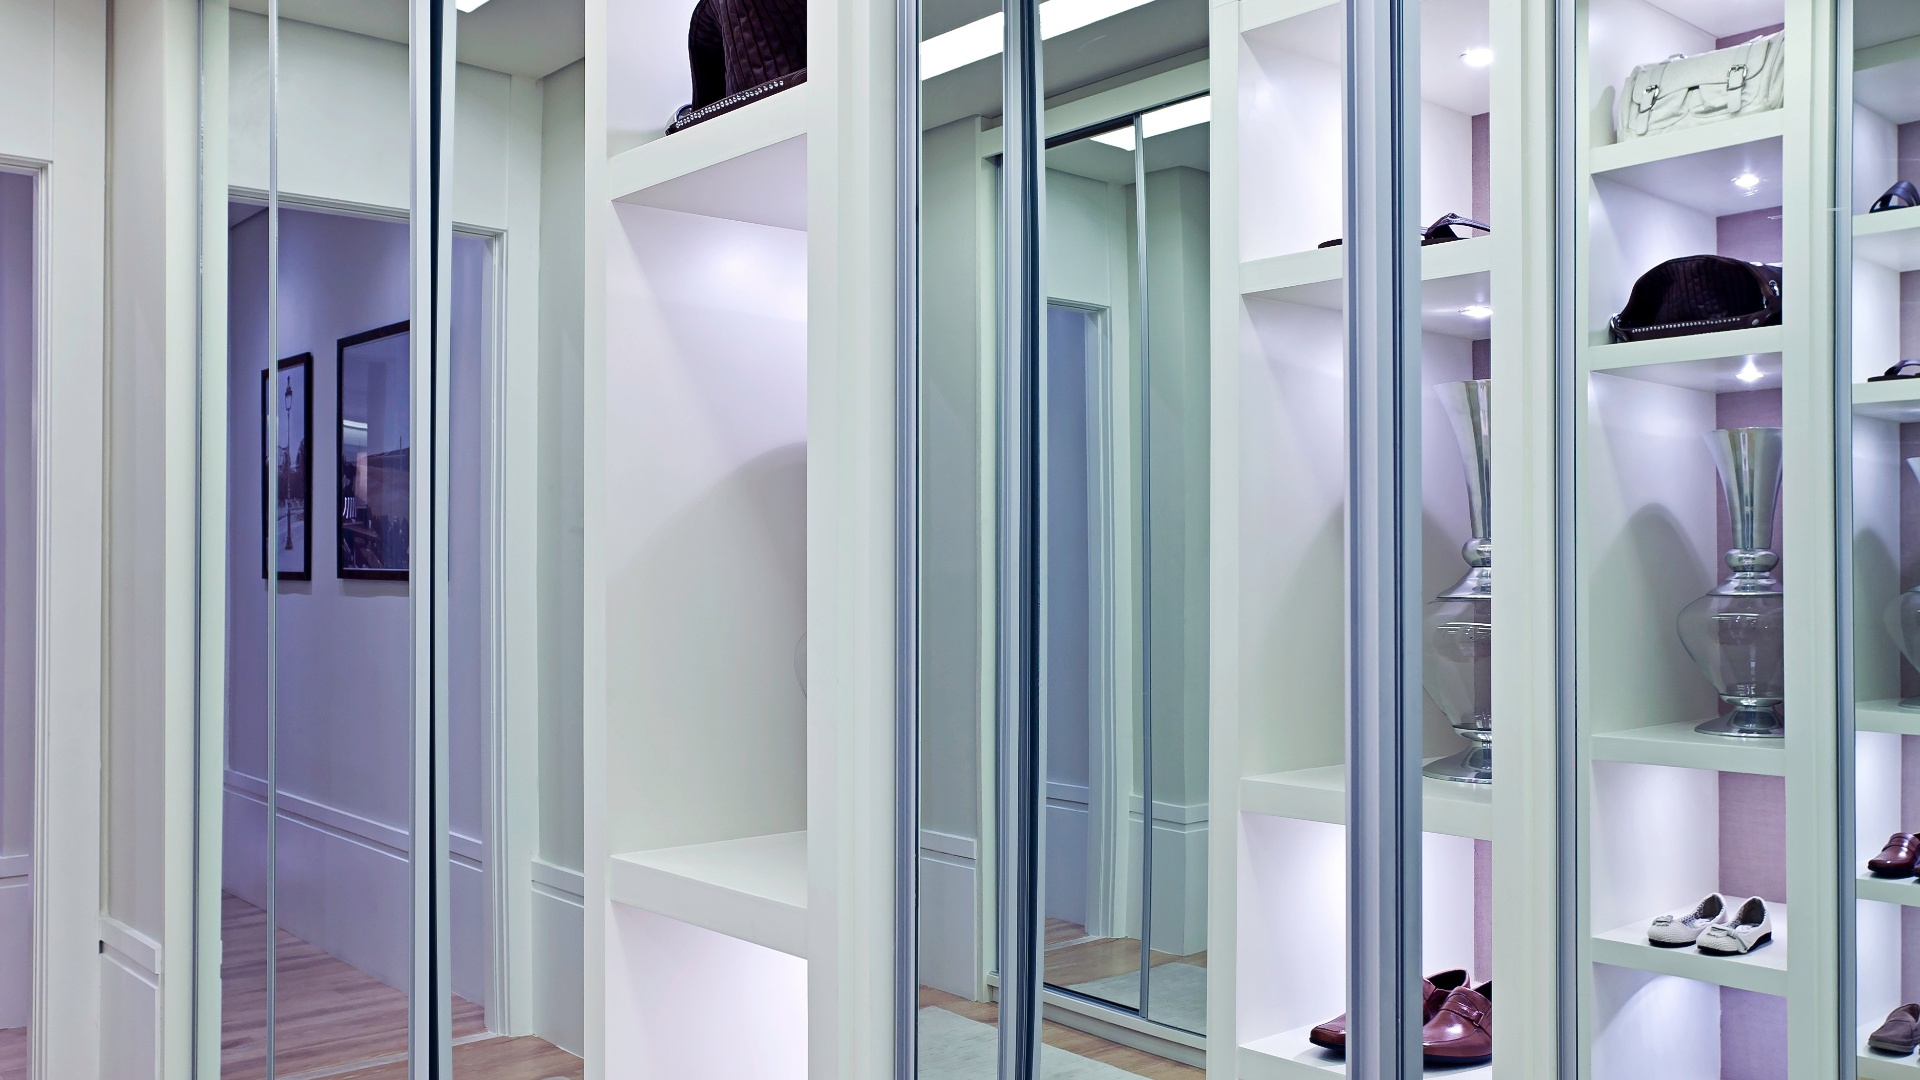 O closet com 12 m est instalado na passagem para a sute e conta com armrios espelhados e nichos. O espao foi idealizado sob medida pela arquiteta Maithi Guedes